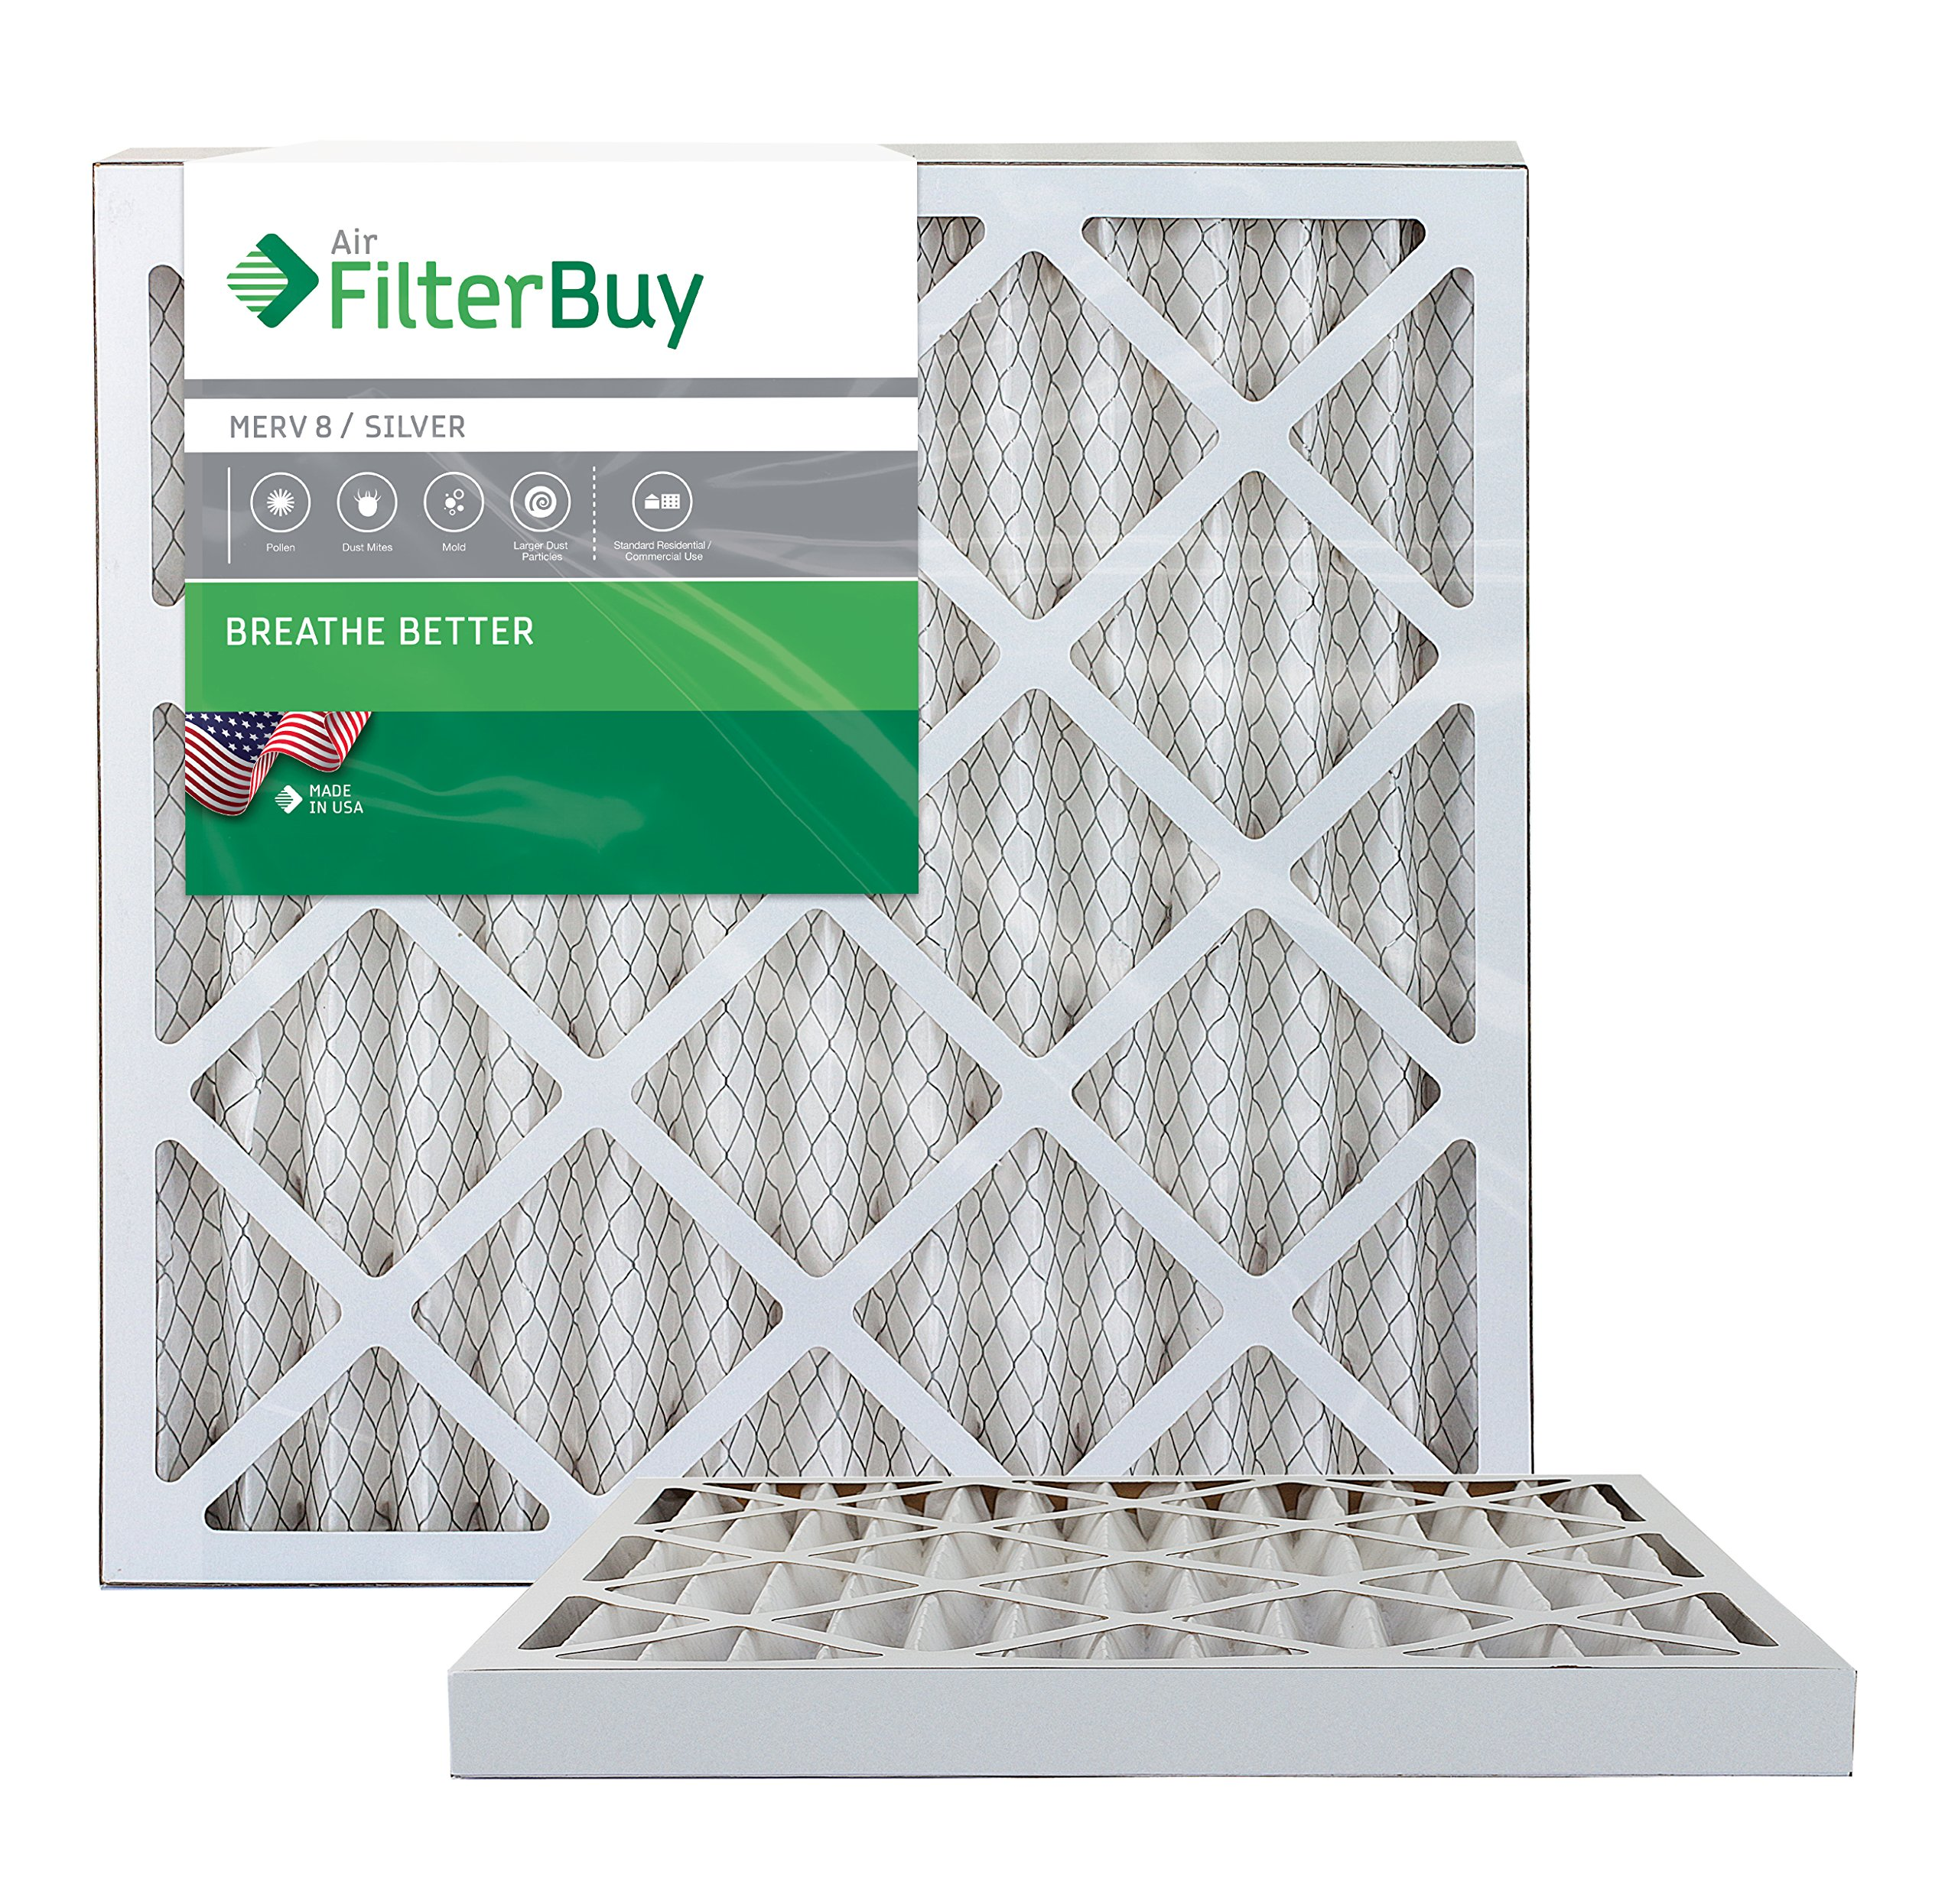 FilterBuy 25x25x2 MERV 8 Pleated AC Furnace Air Filter, (Pack of 2 Filters), 25x25x2 – Silver